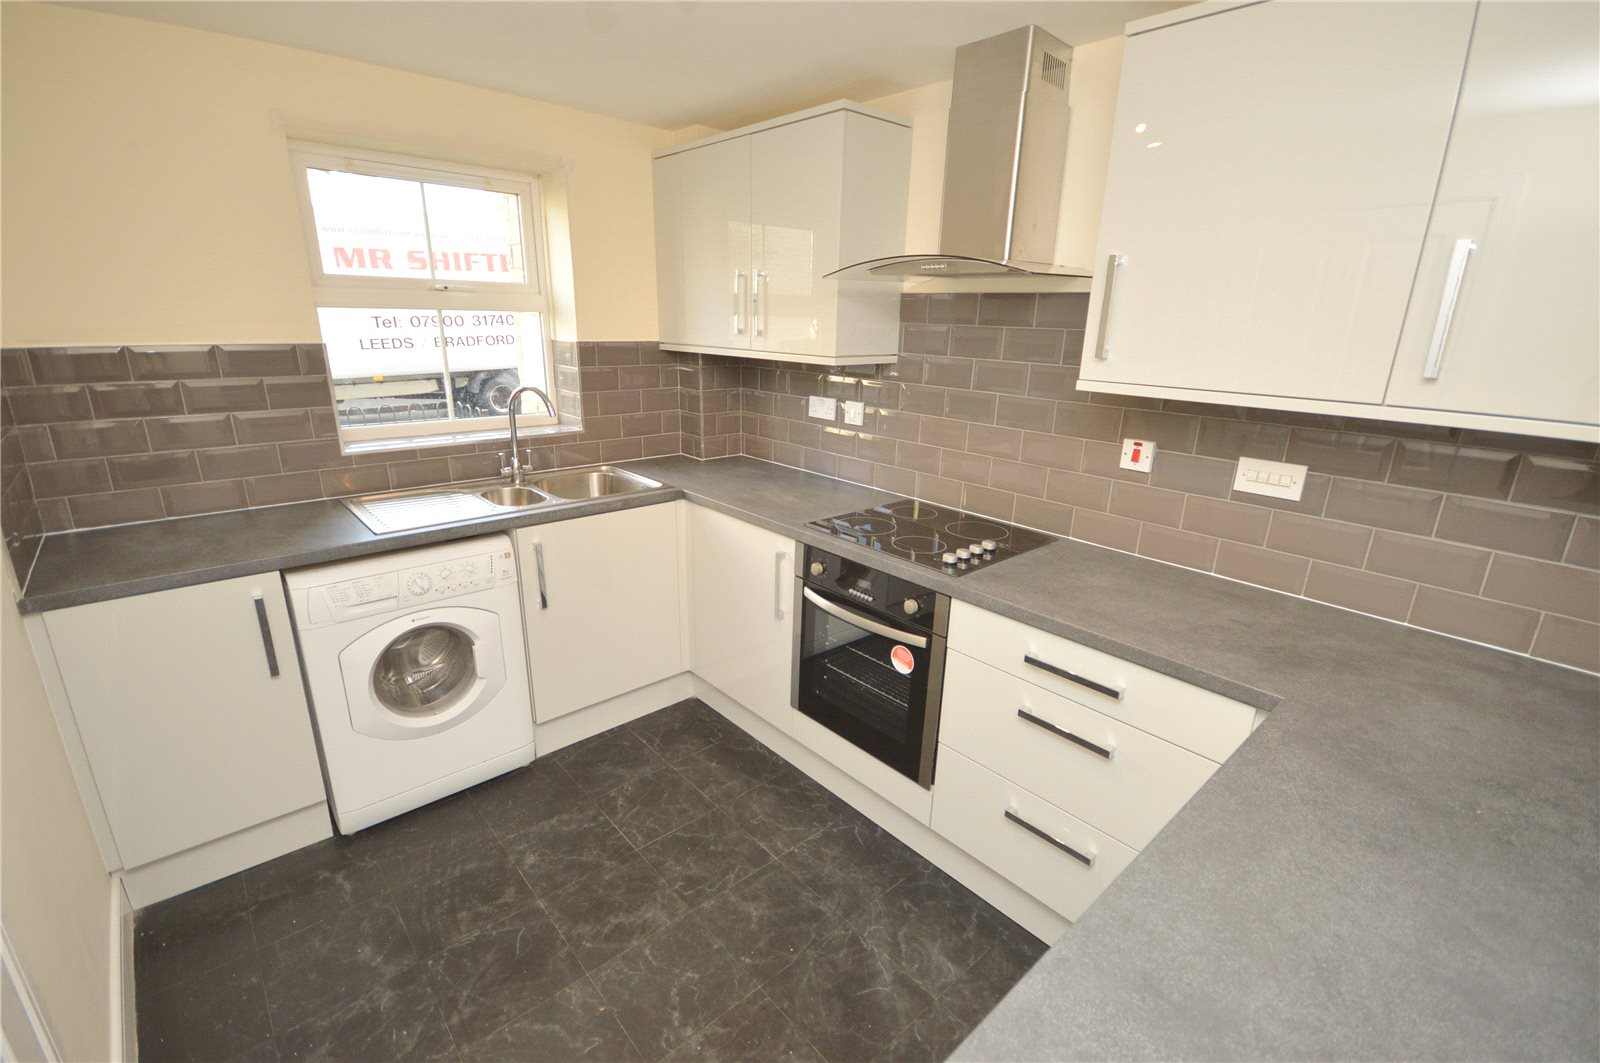 Property for sale in Bradford interior kitchen modern fitted